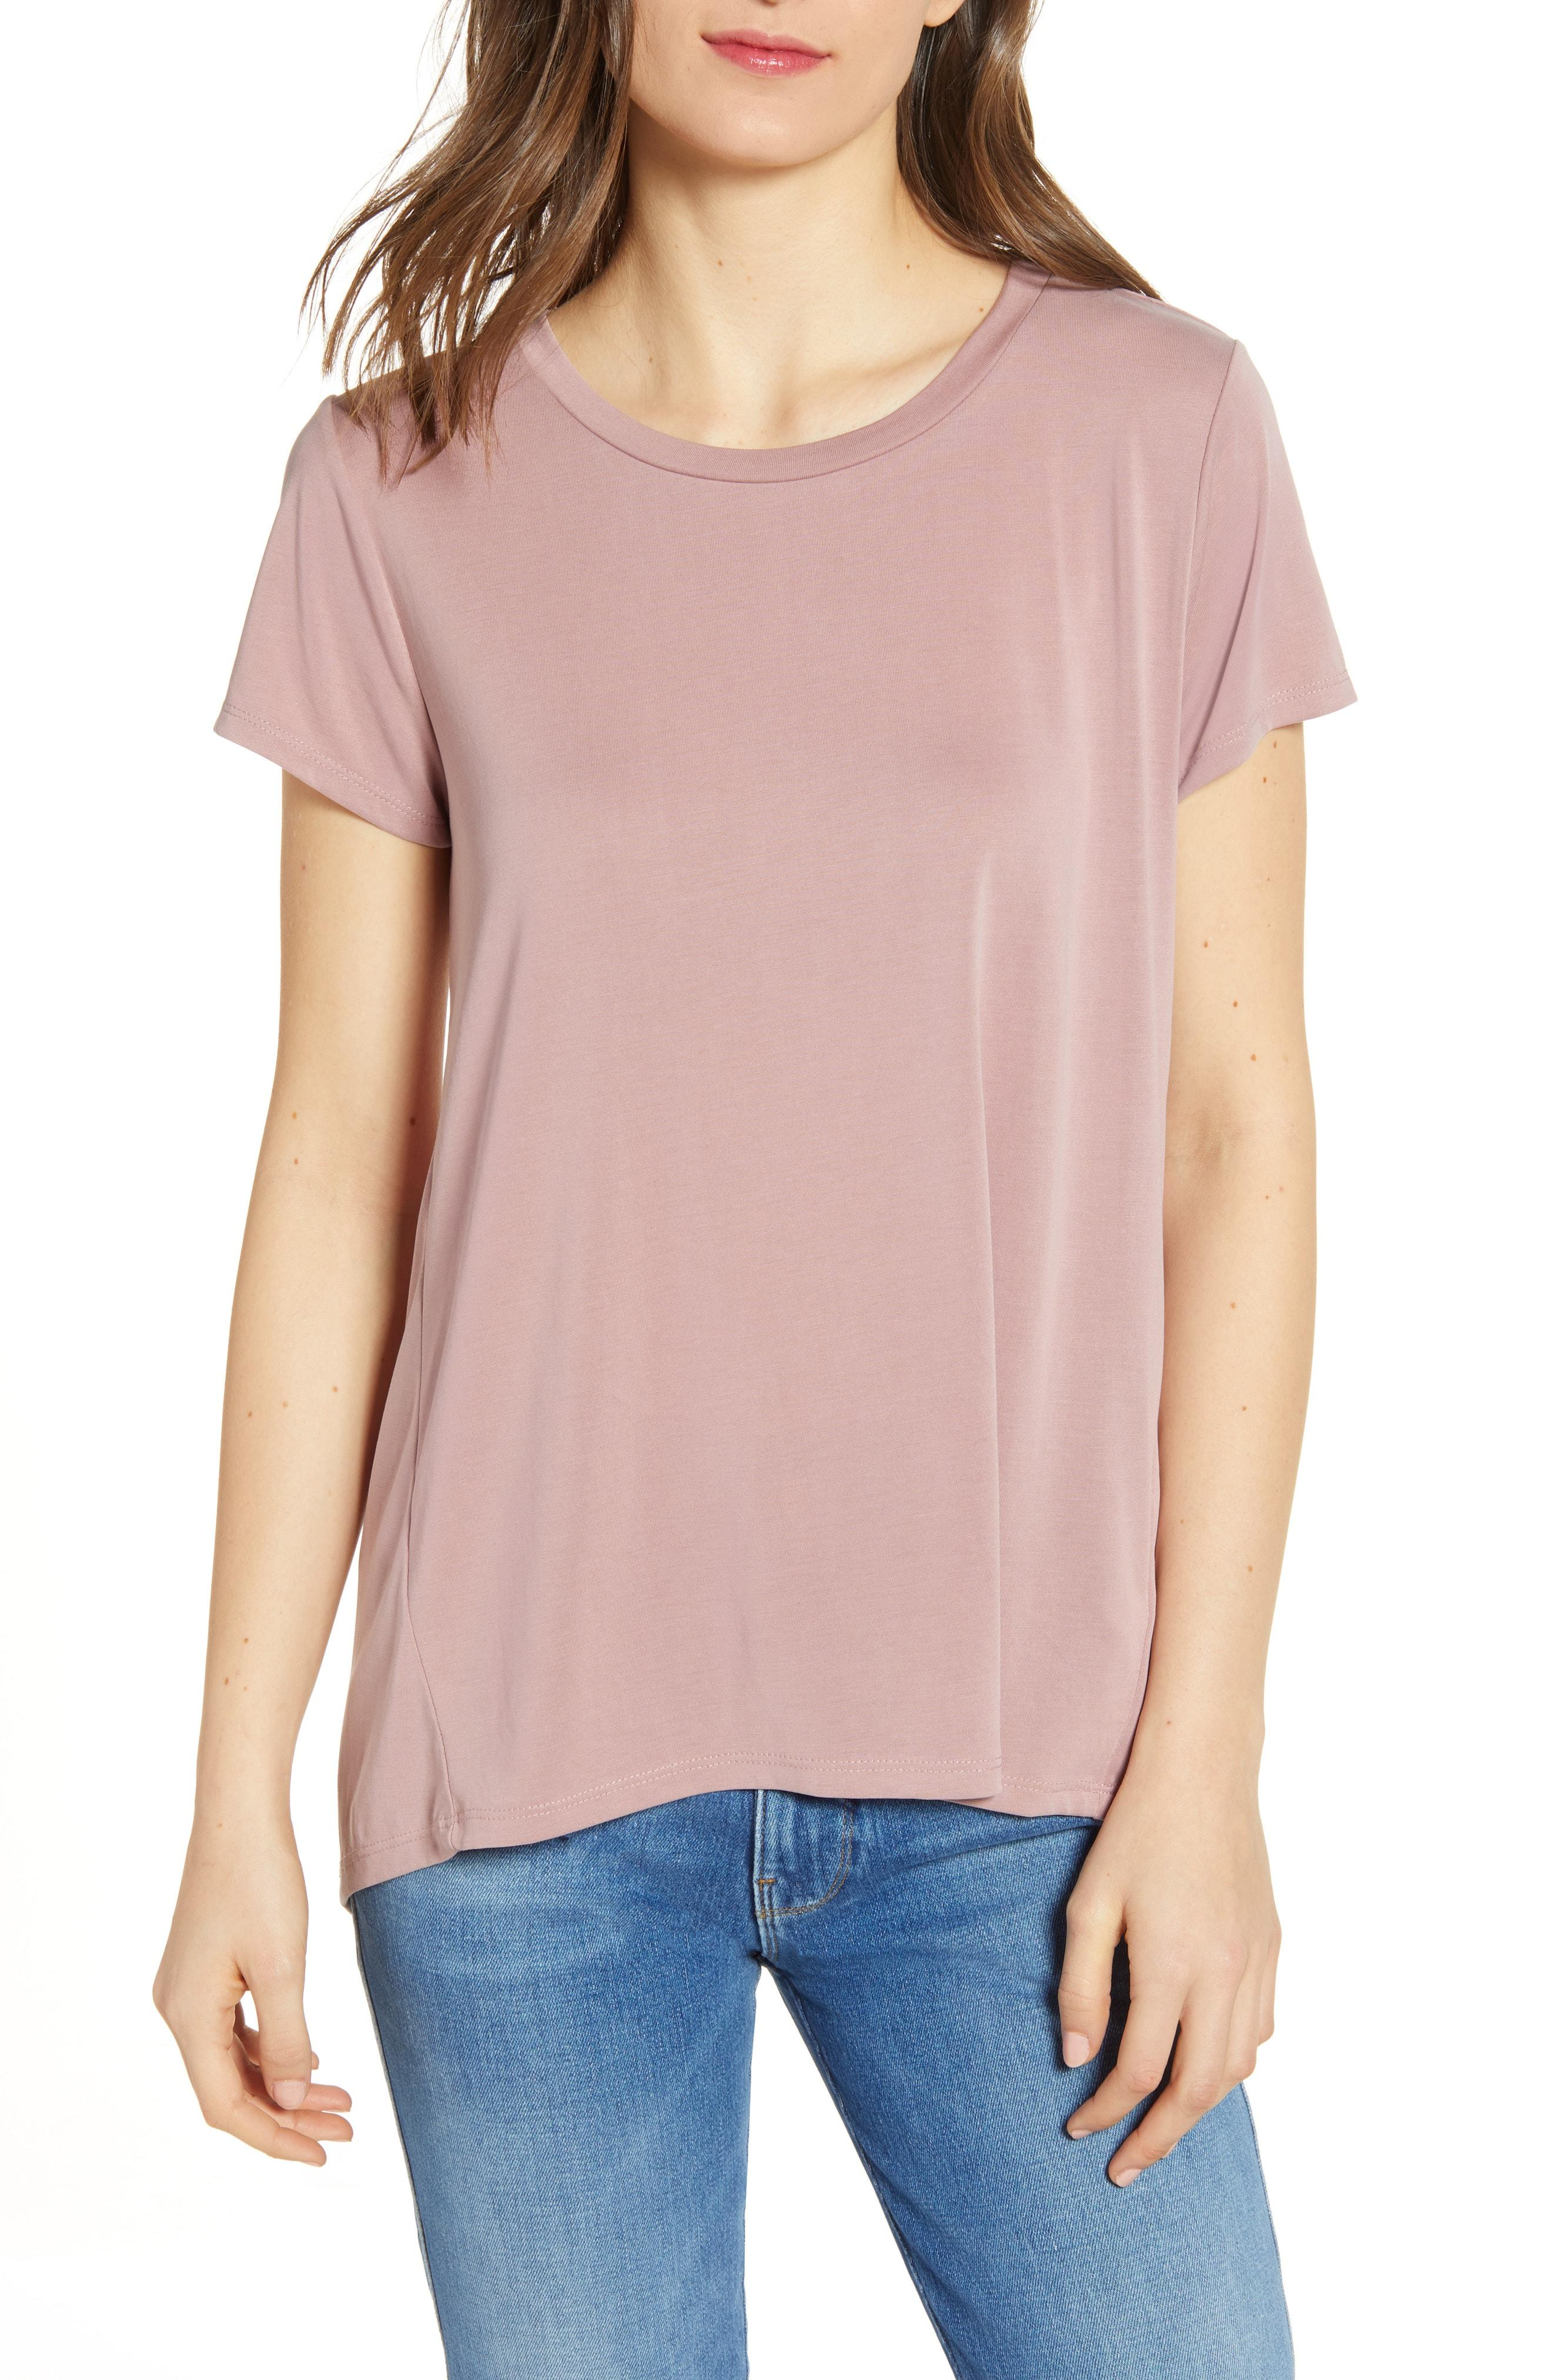 e08b9386014fb6 Lyst - Chelsea28 High low Crewneck Tee in Pink